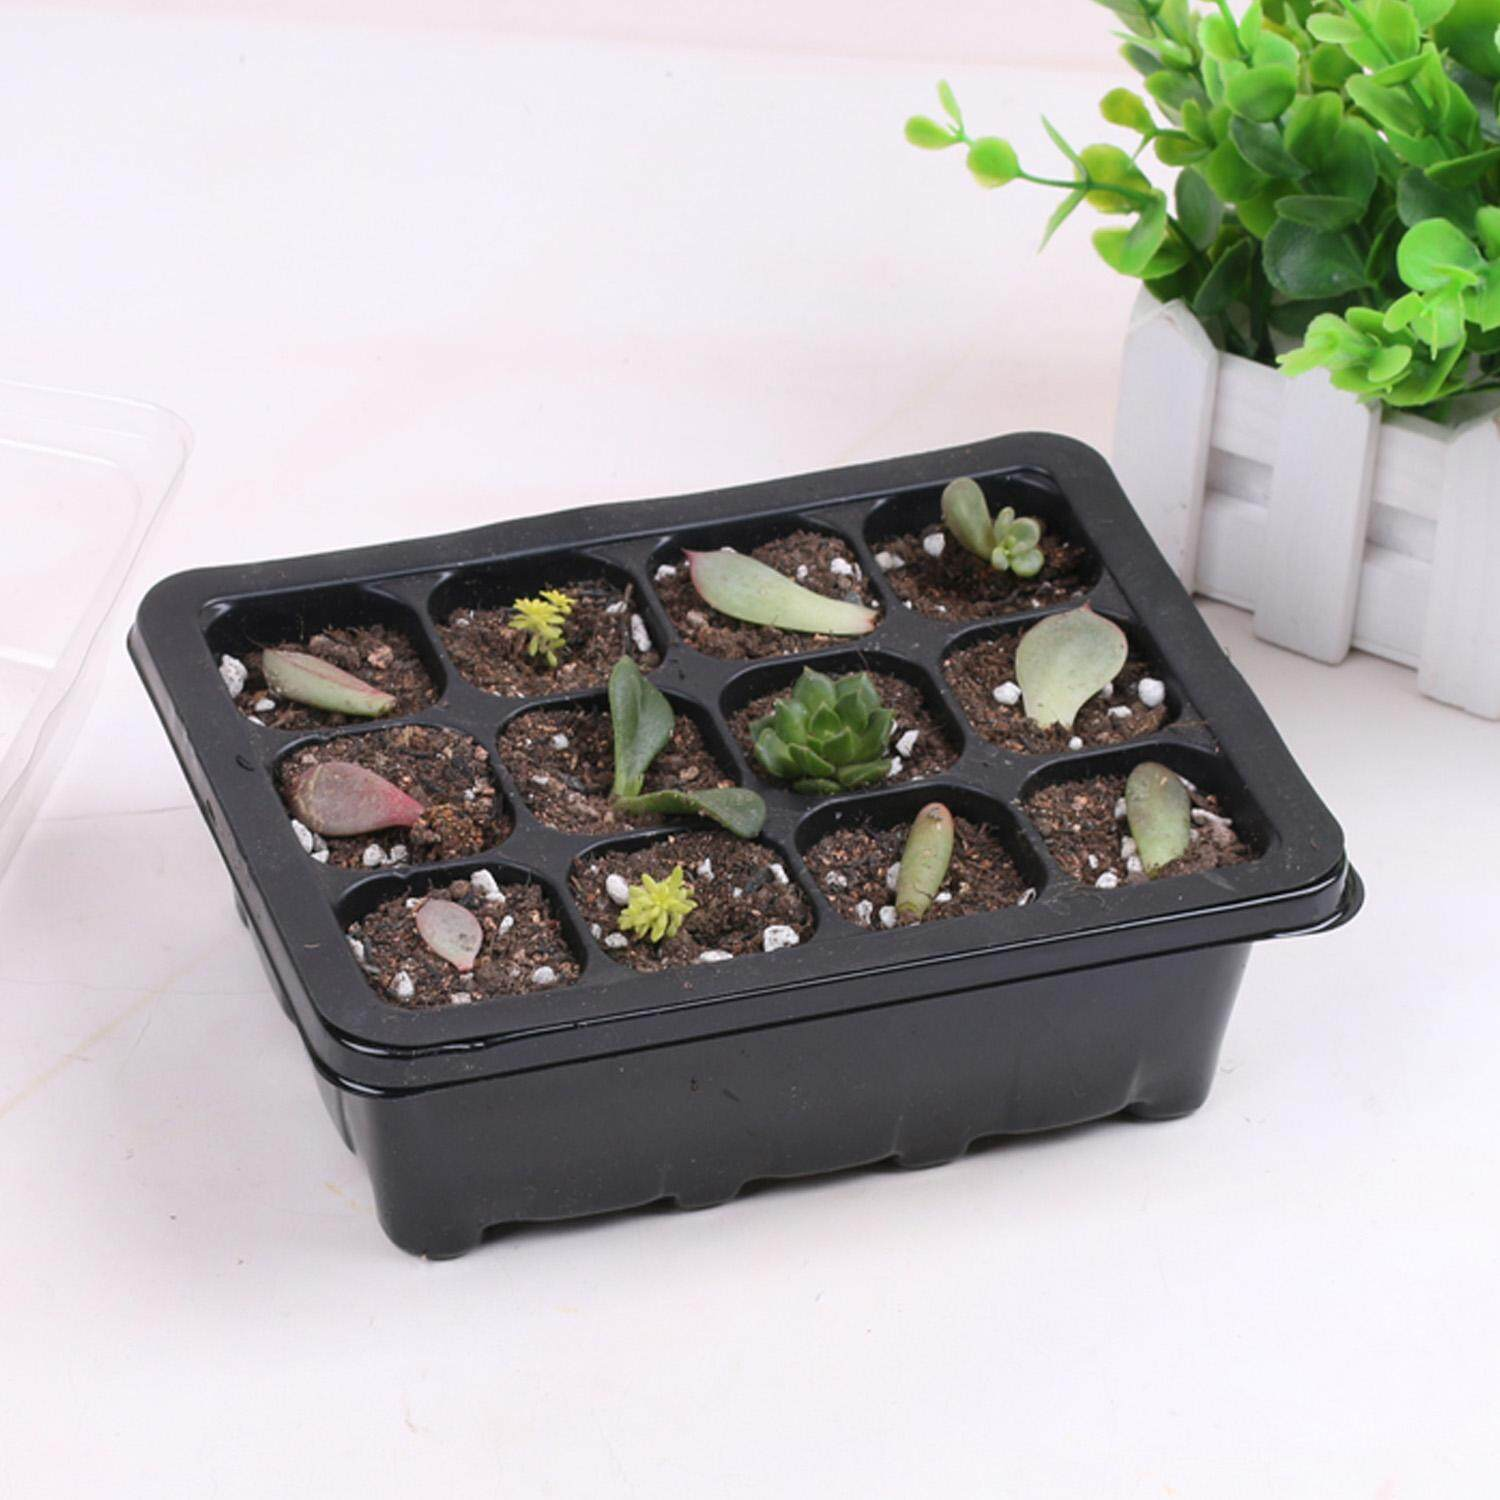 Vococal  6 Set 18.7x14.5x11cm 12-Cell Seedling Seed Starter Tray Kit for Garden Greenhouse Succulent Wheatgrass Microgreens